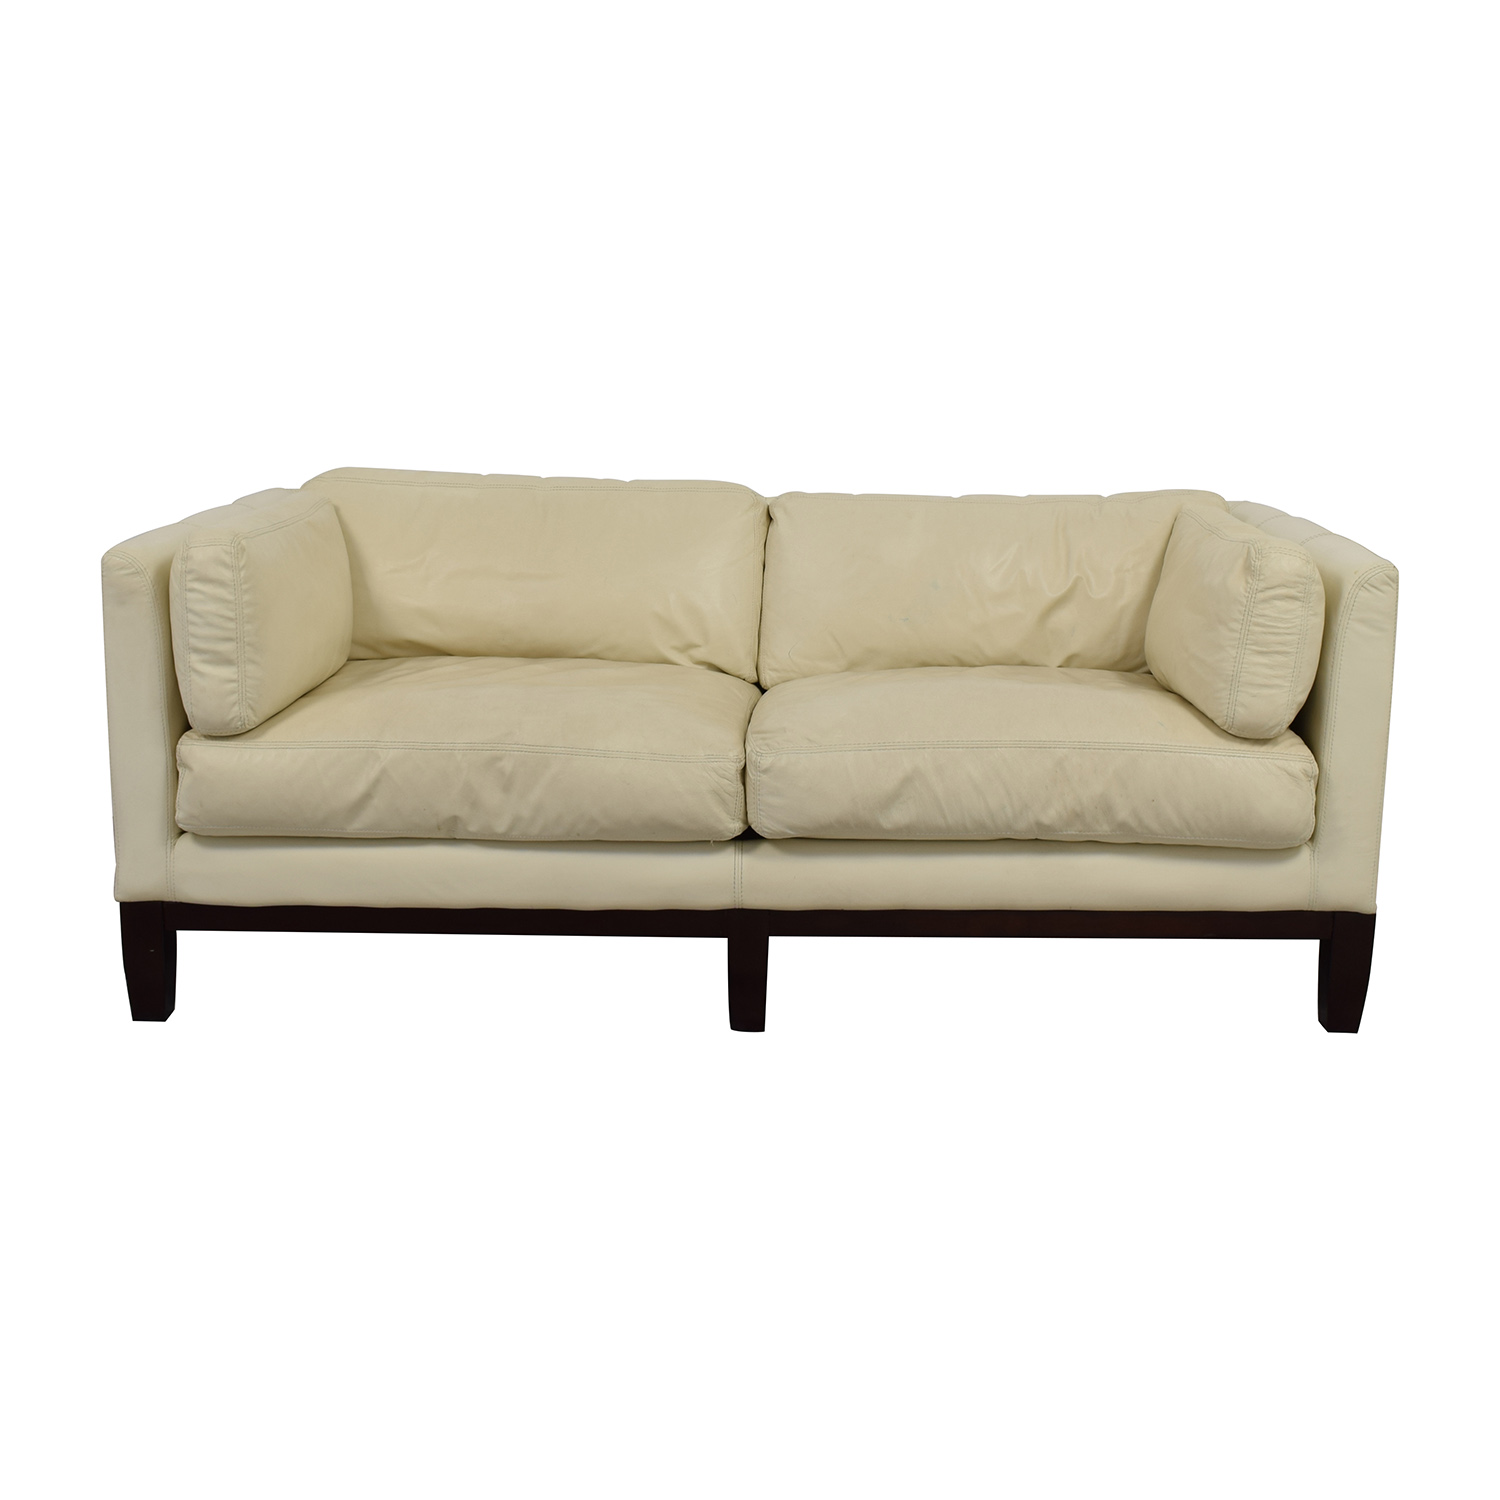 100 White Leather Sofas For Sale Furniture 40